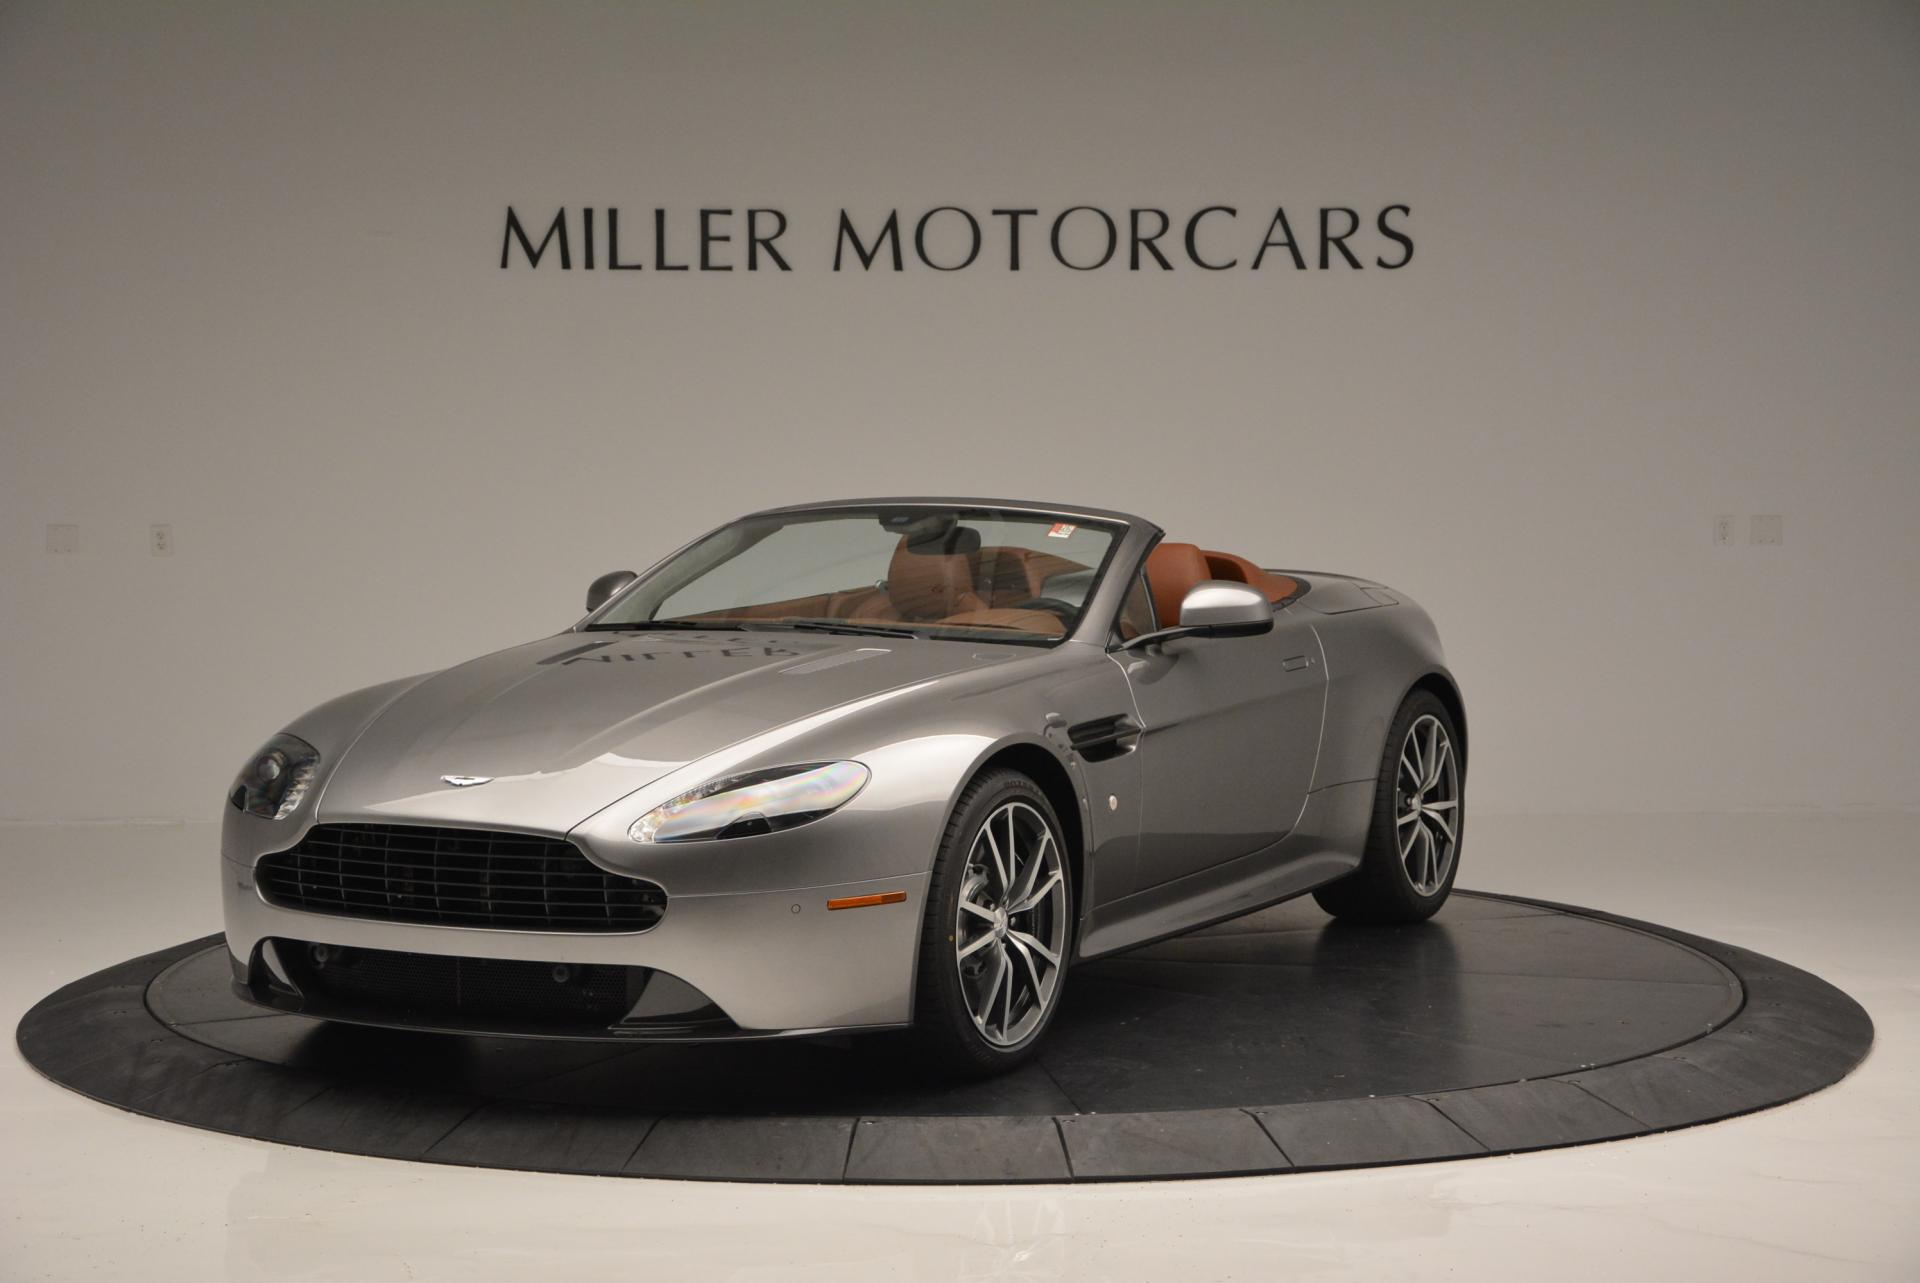 New 2016 Aston Martin V8 Vantage S for sale Sold at Bentley Greenwich in Greenwich CT 06830 1